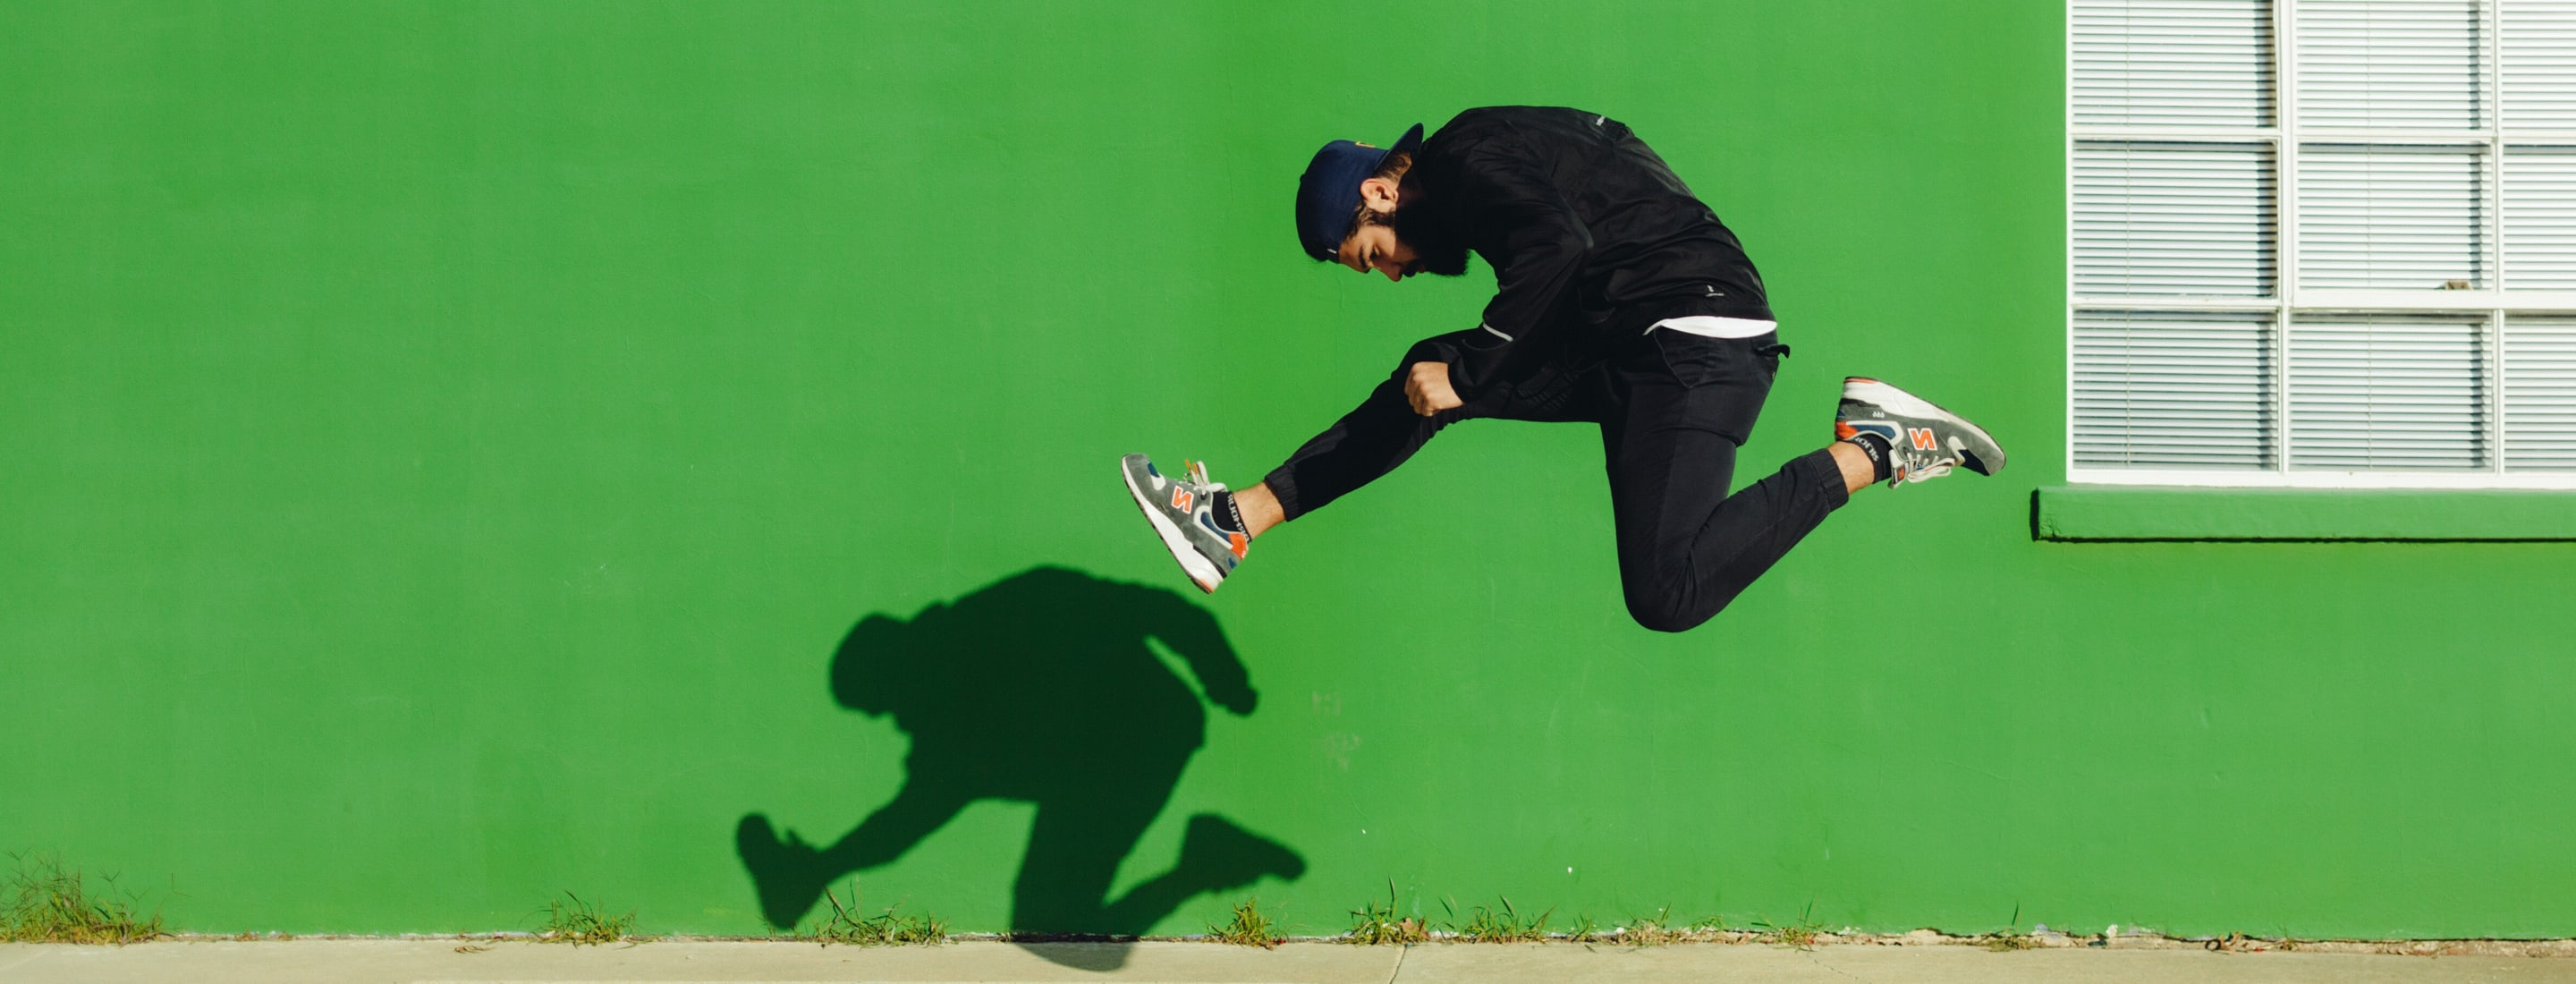 Image of male hurdling on the sidewalk